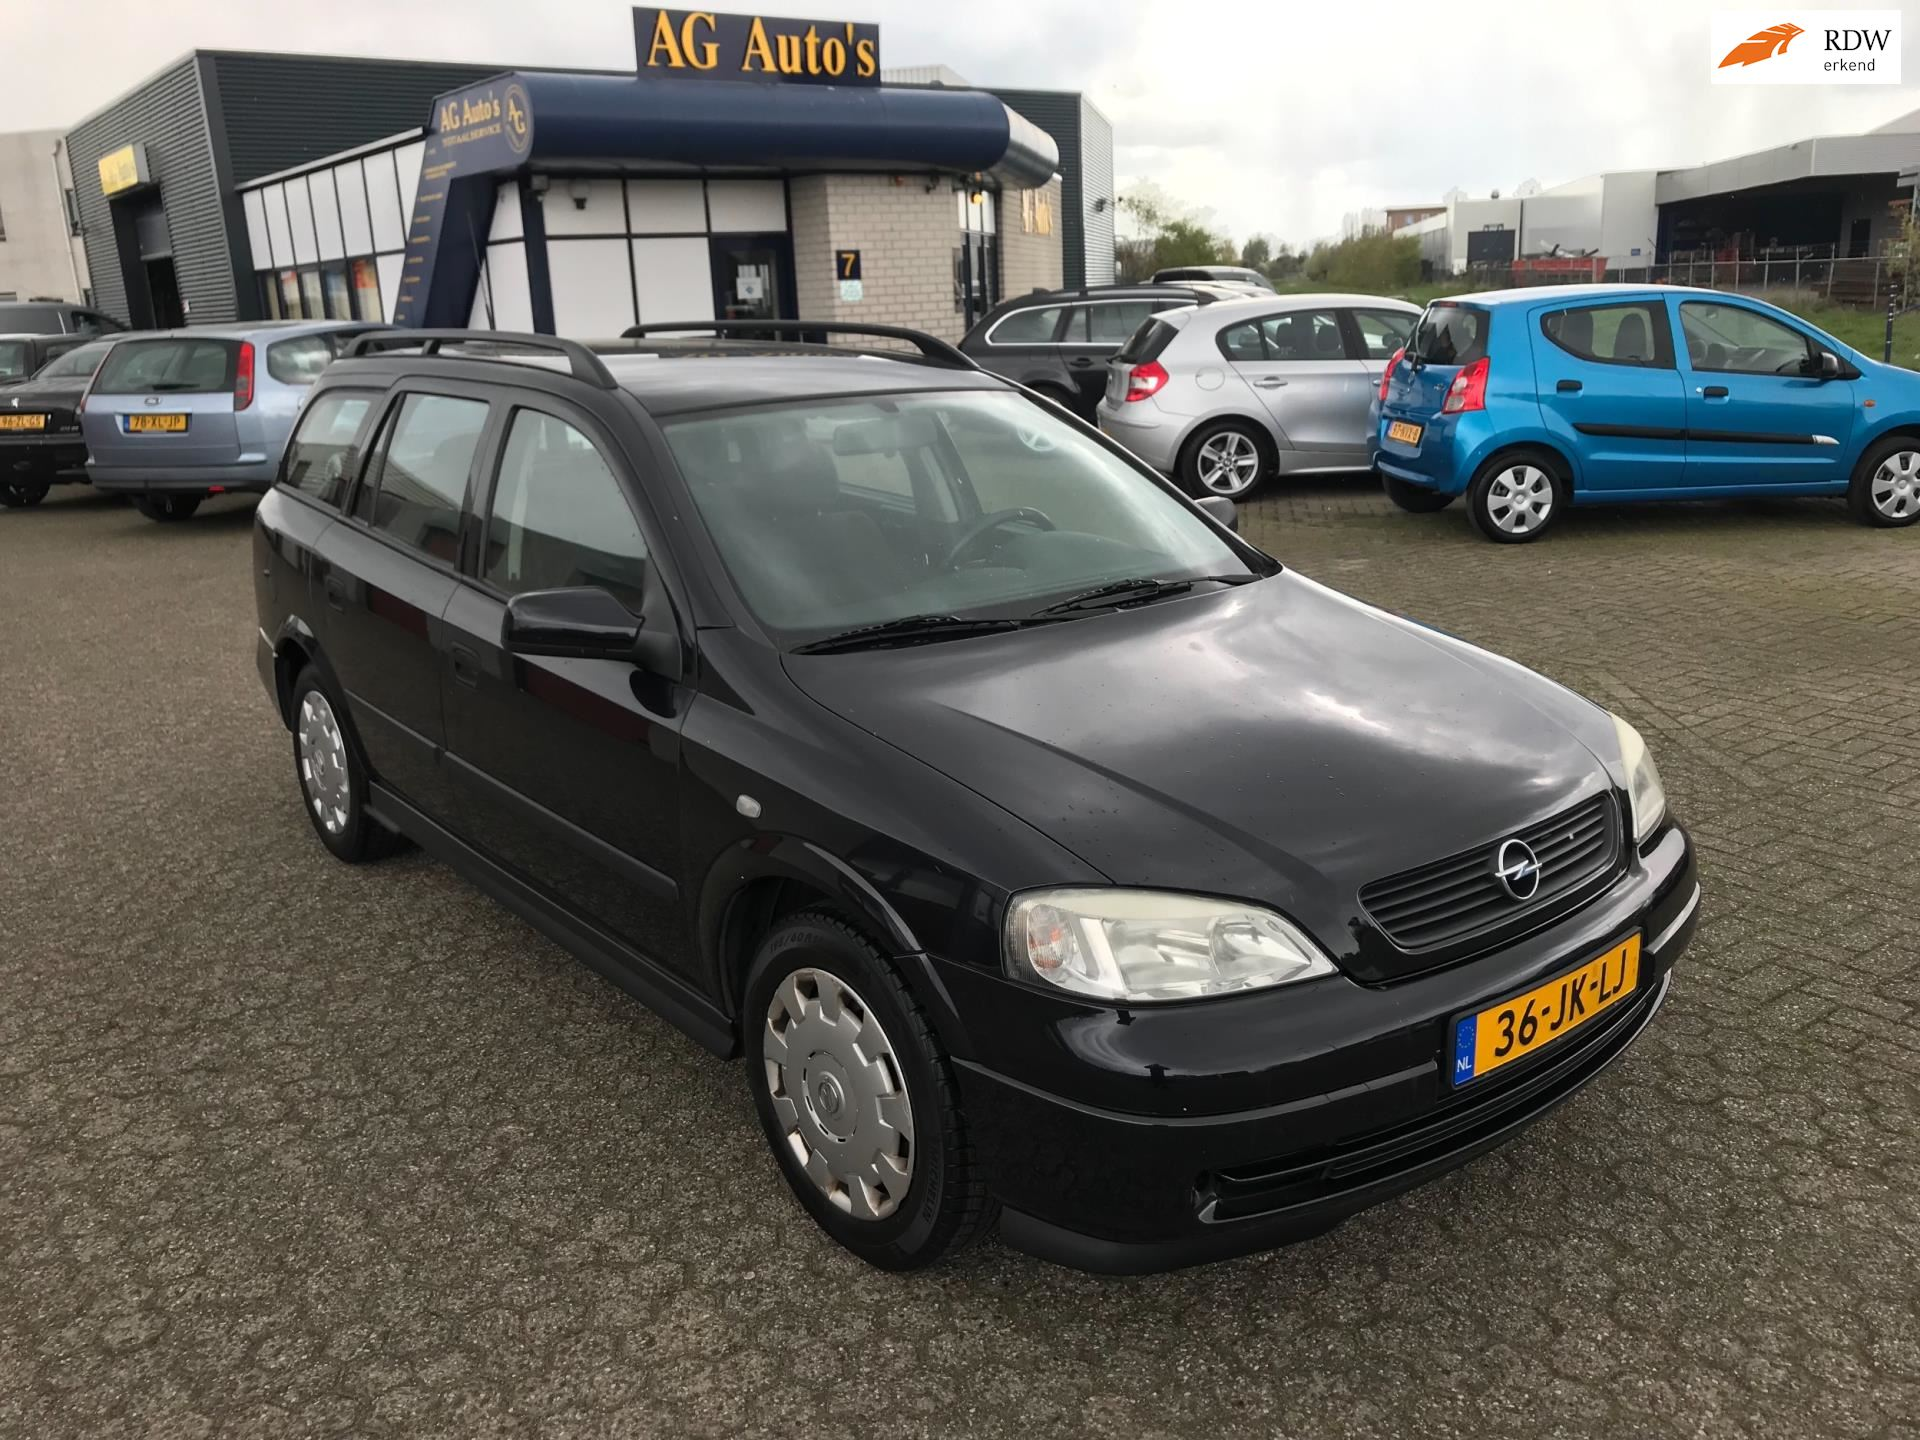 Opel Astra Wagon occasion - AG Auto's